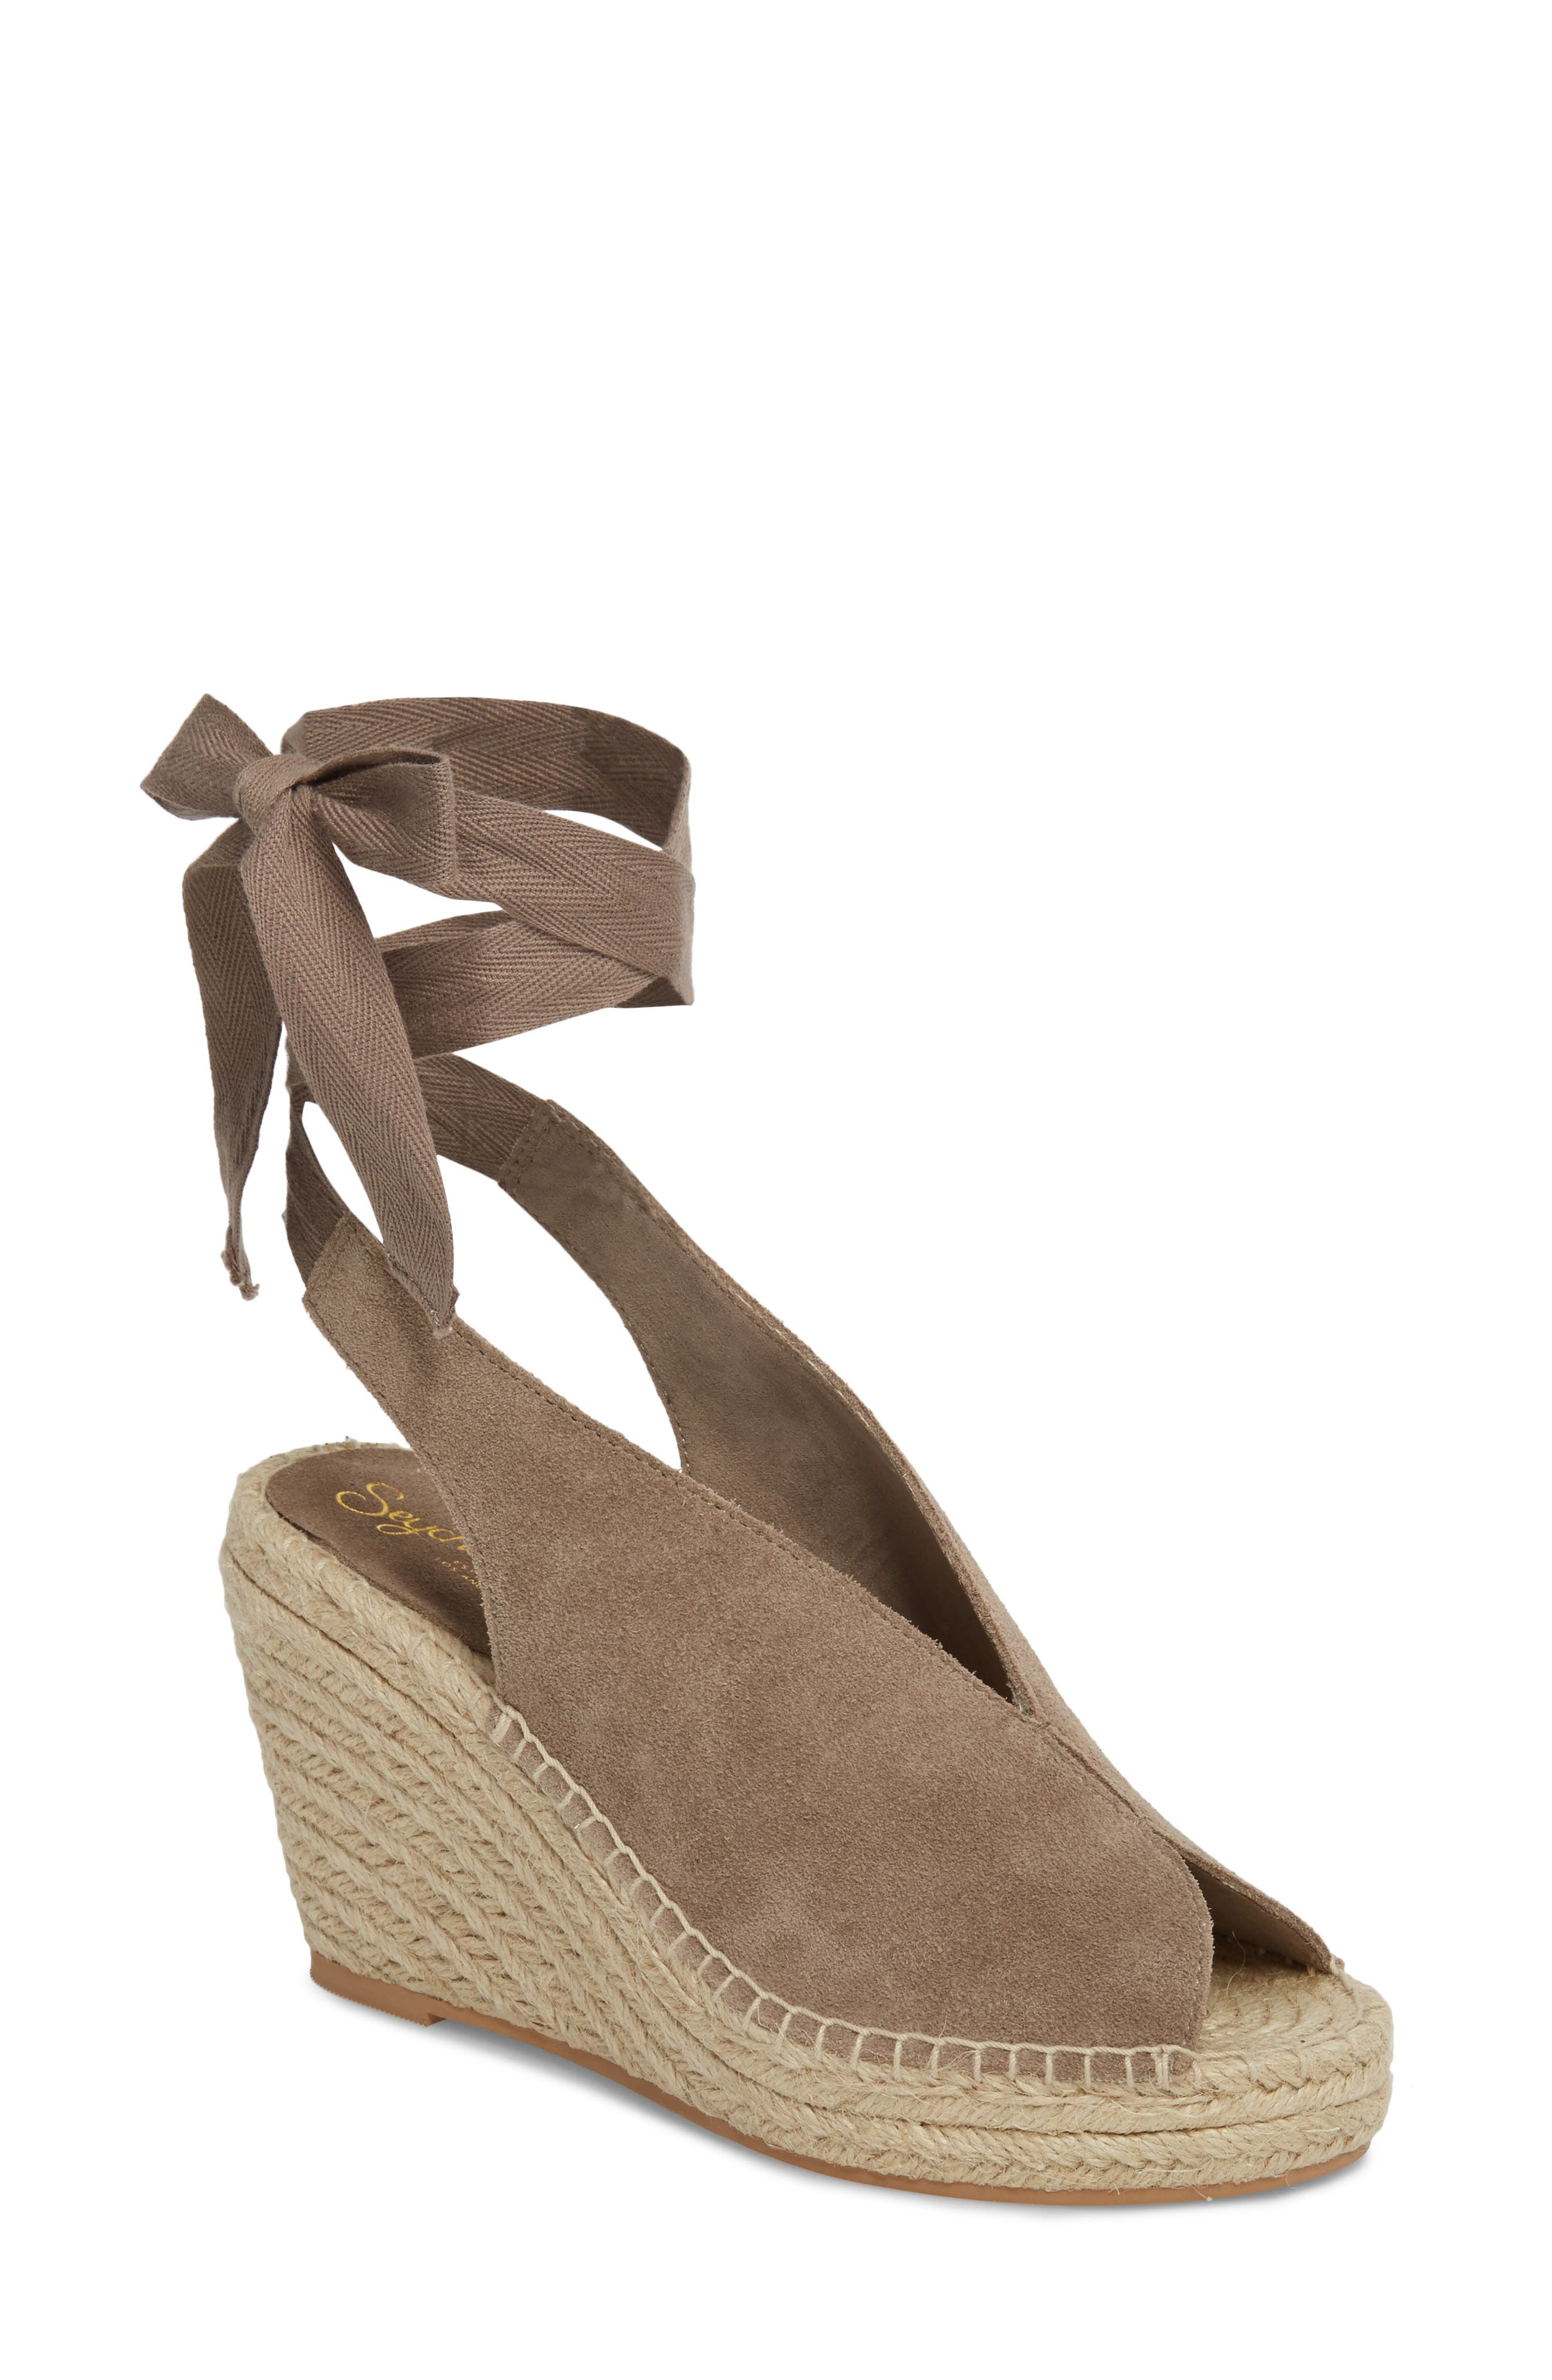 Interrelated Espadrille Wedge Sandal,                             Main thumbnail 1, color,                             Taupe Suede